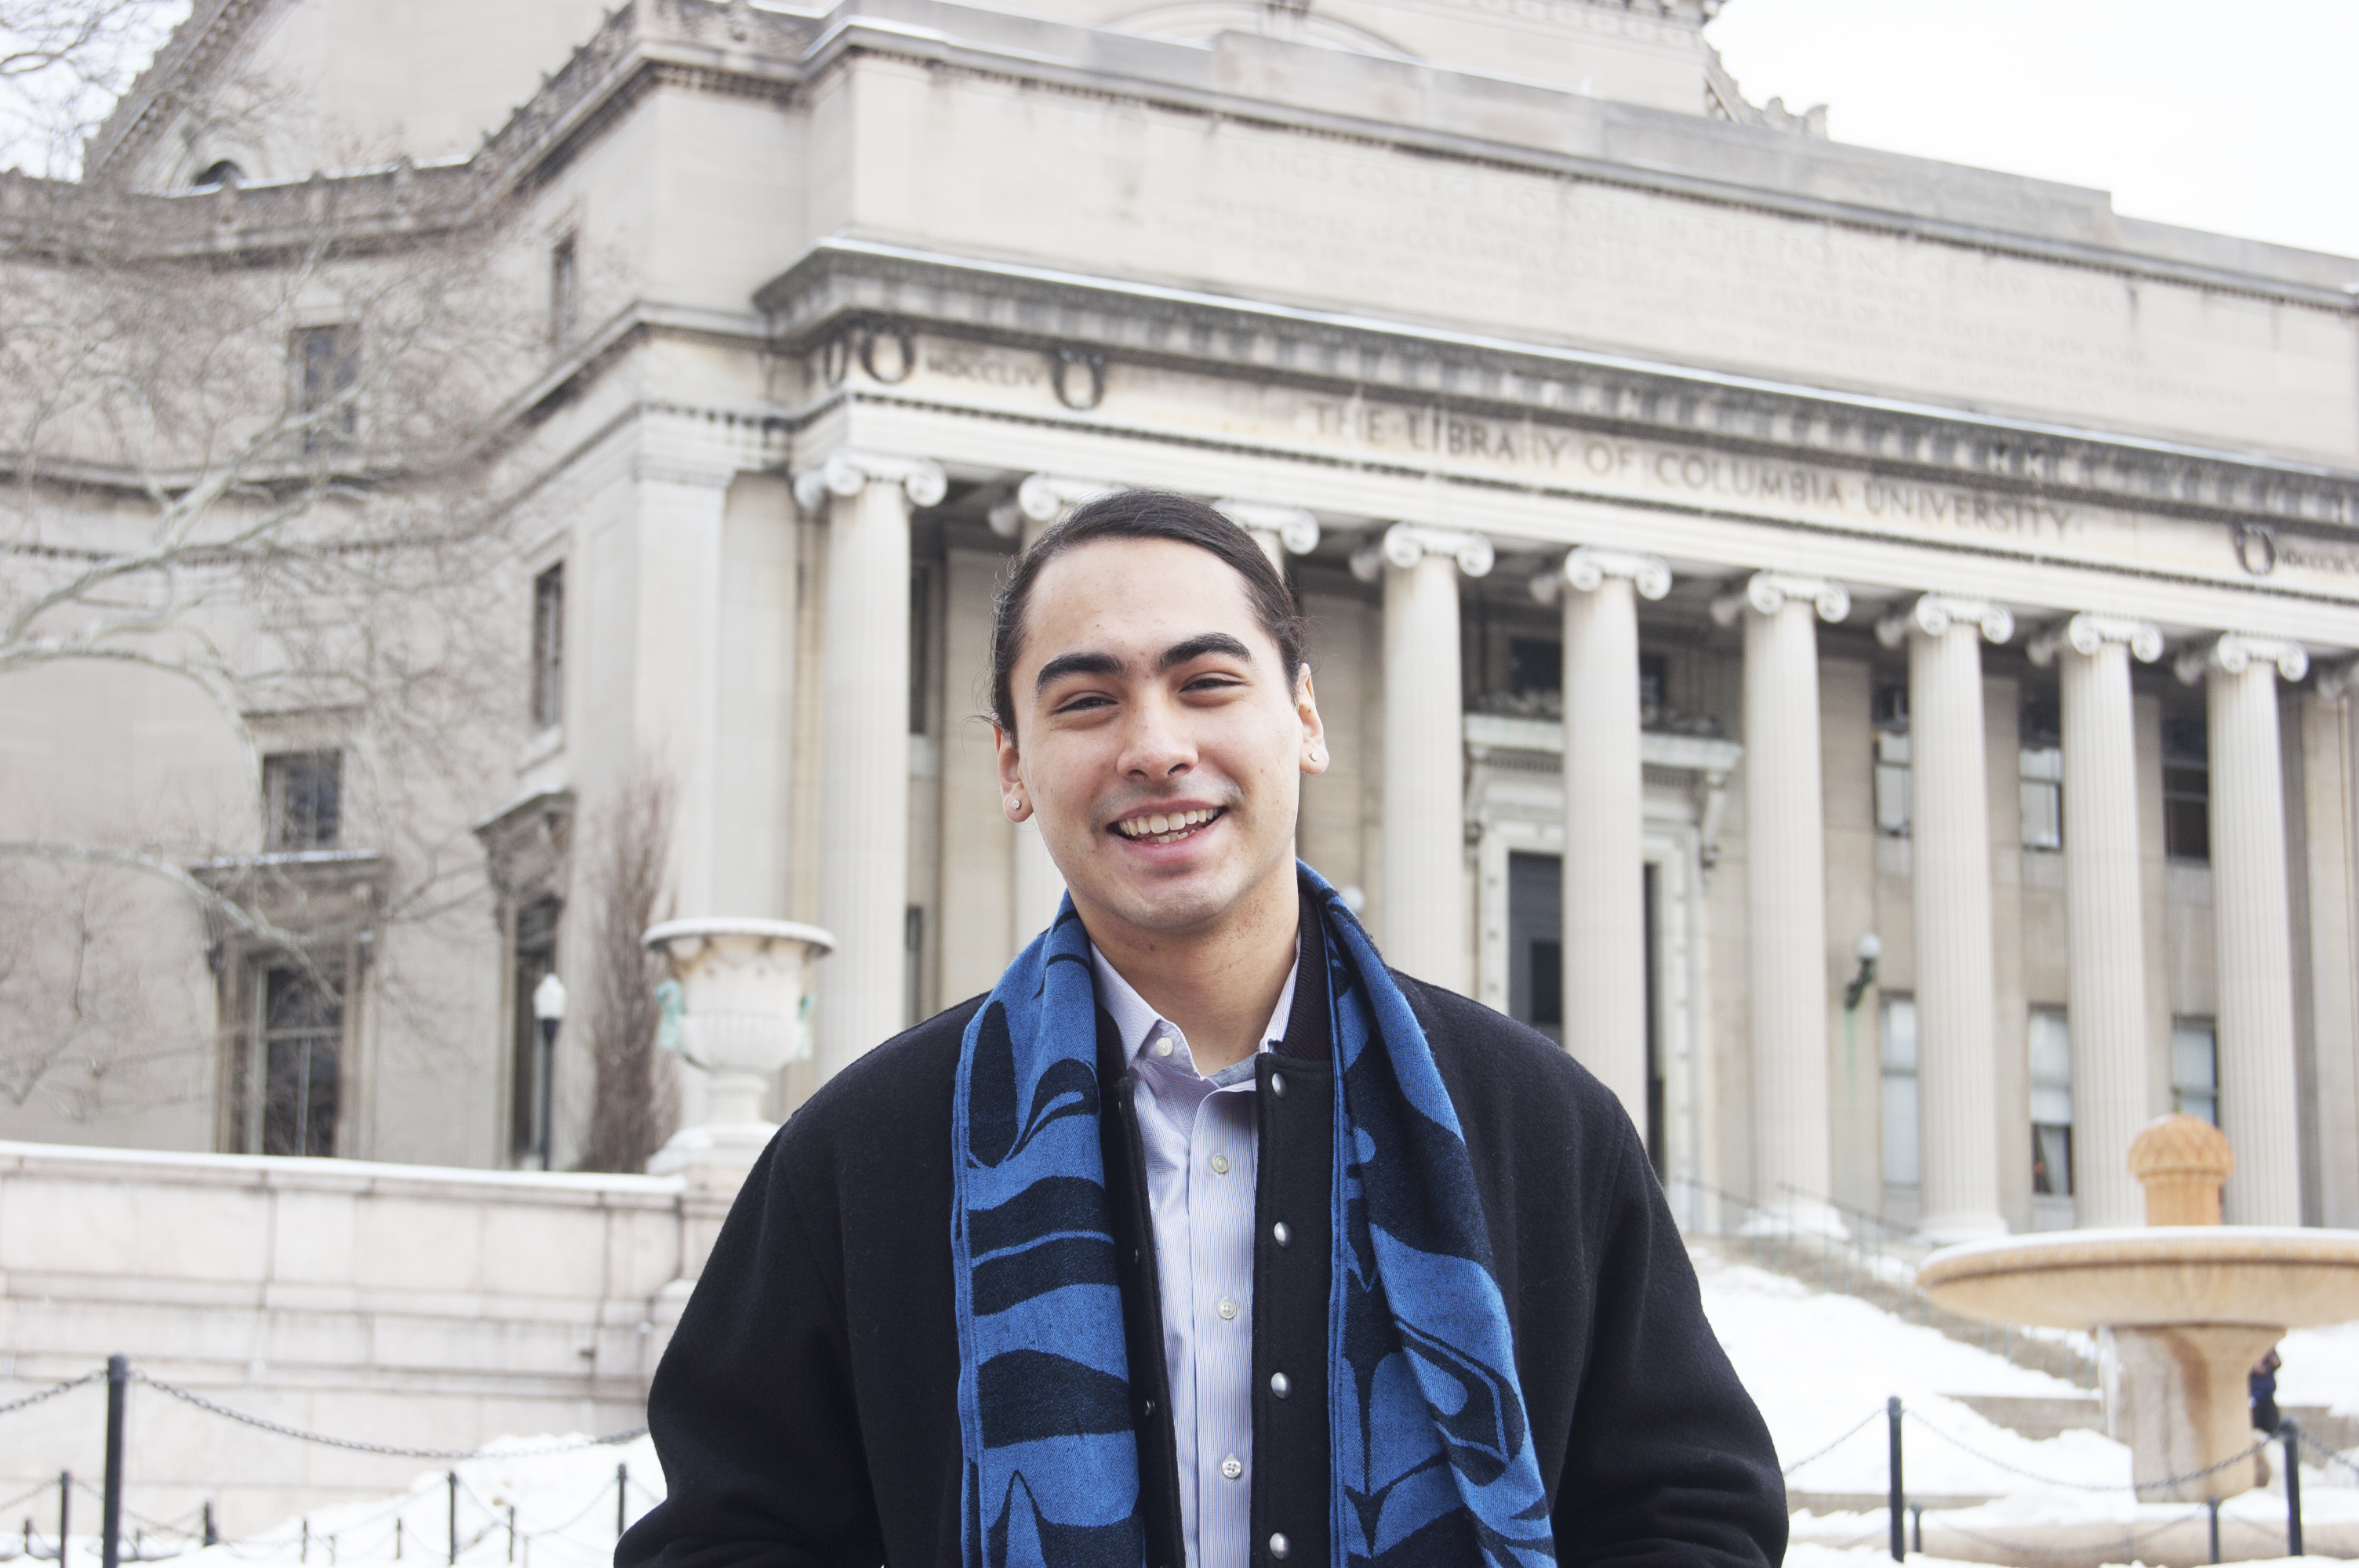 columbia university courseworks sakai Courseworks courseworks@columbia is the university's course management system you will access your course websites through courseworks.